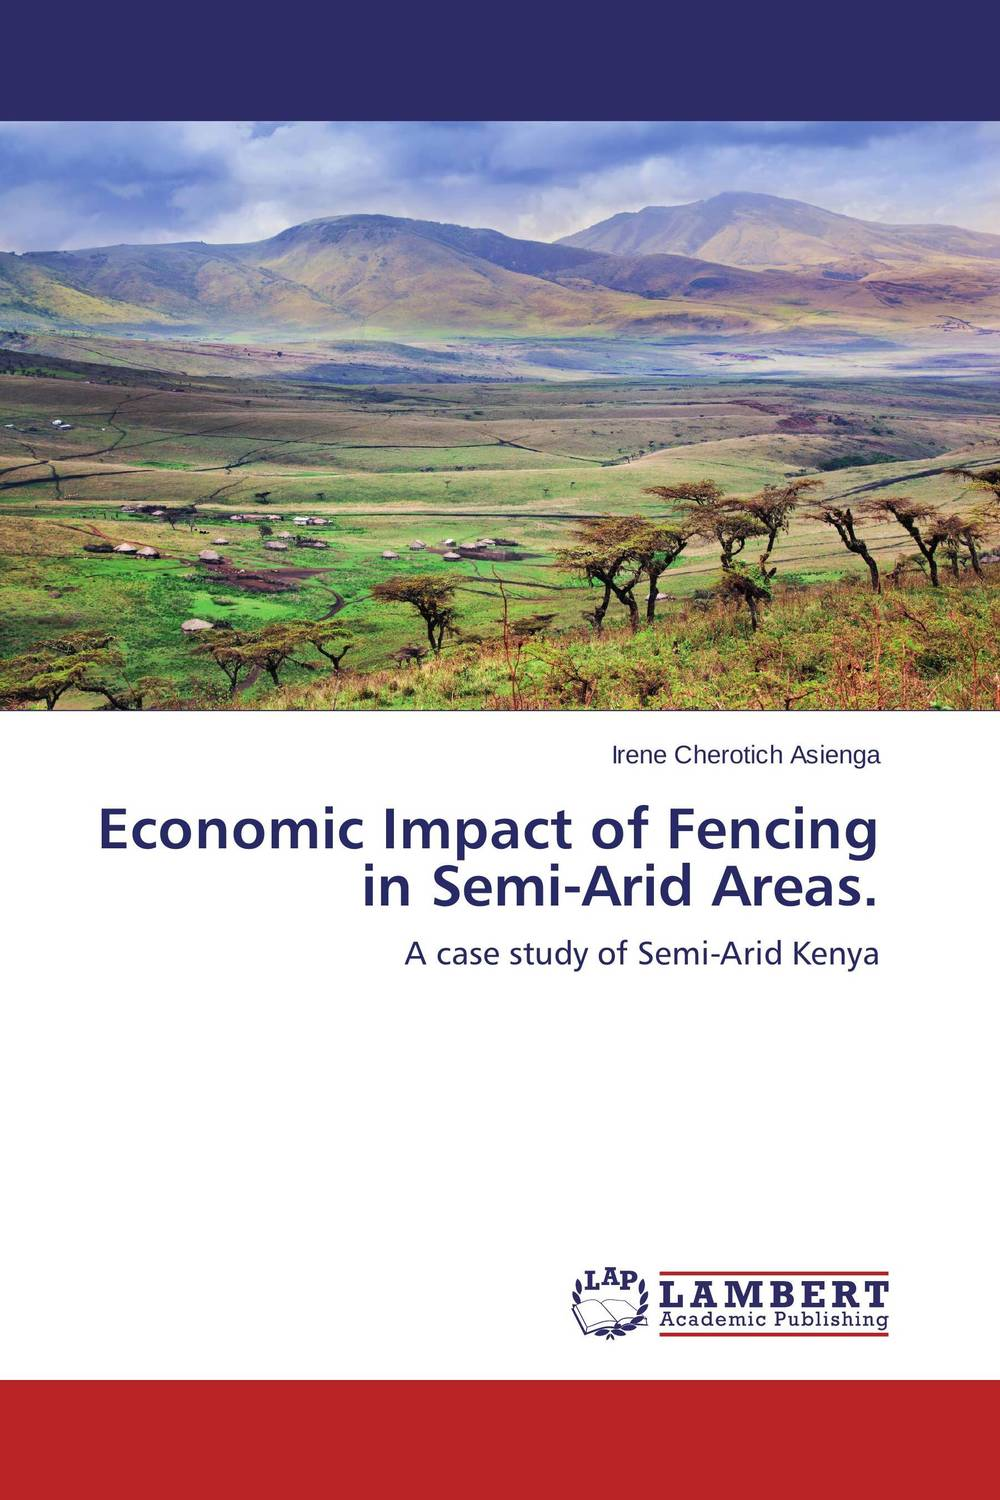 Economic Impact of Fencing in Semi-Arid Areas farm level adoption of water system innovations in semi arid areas